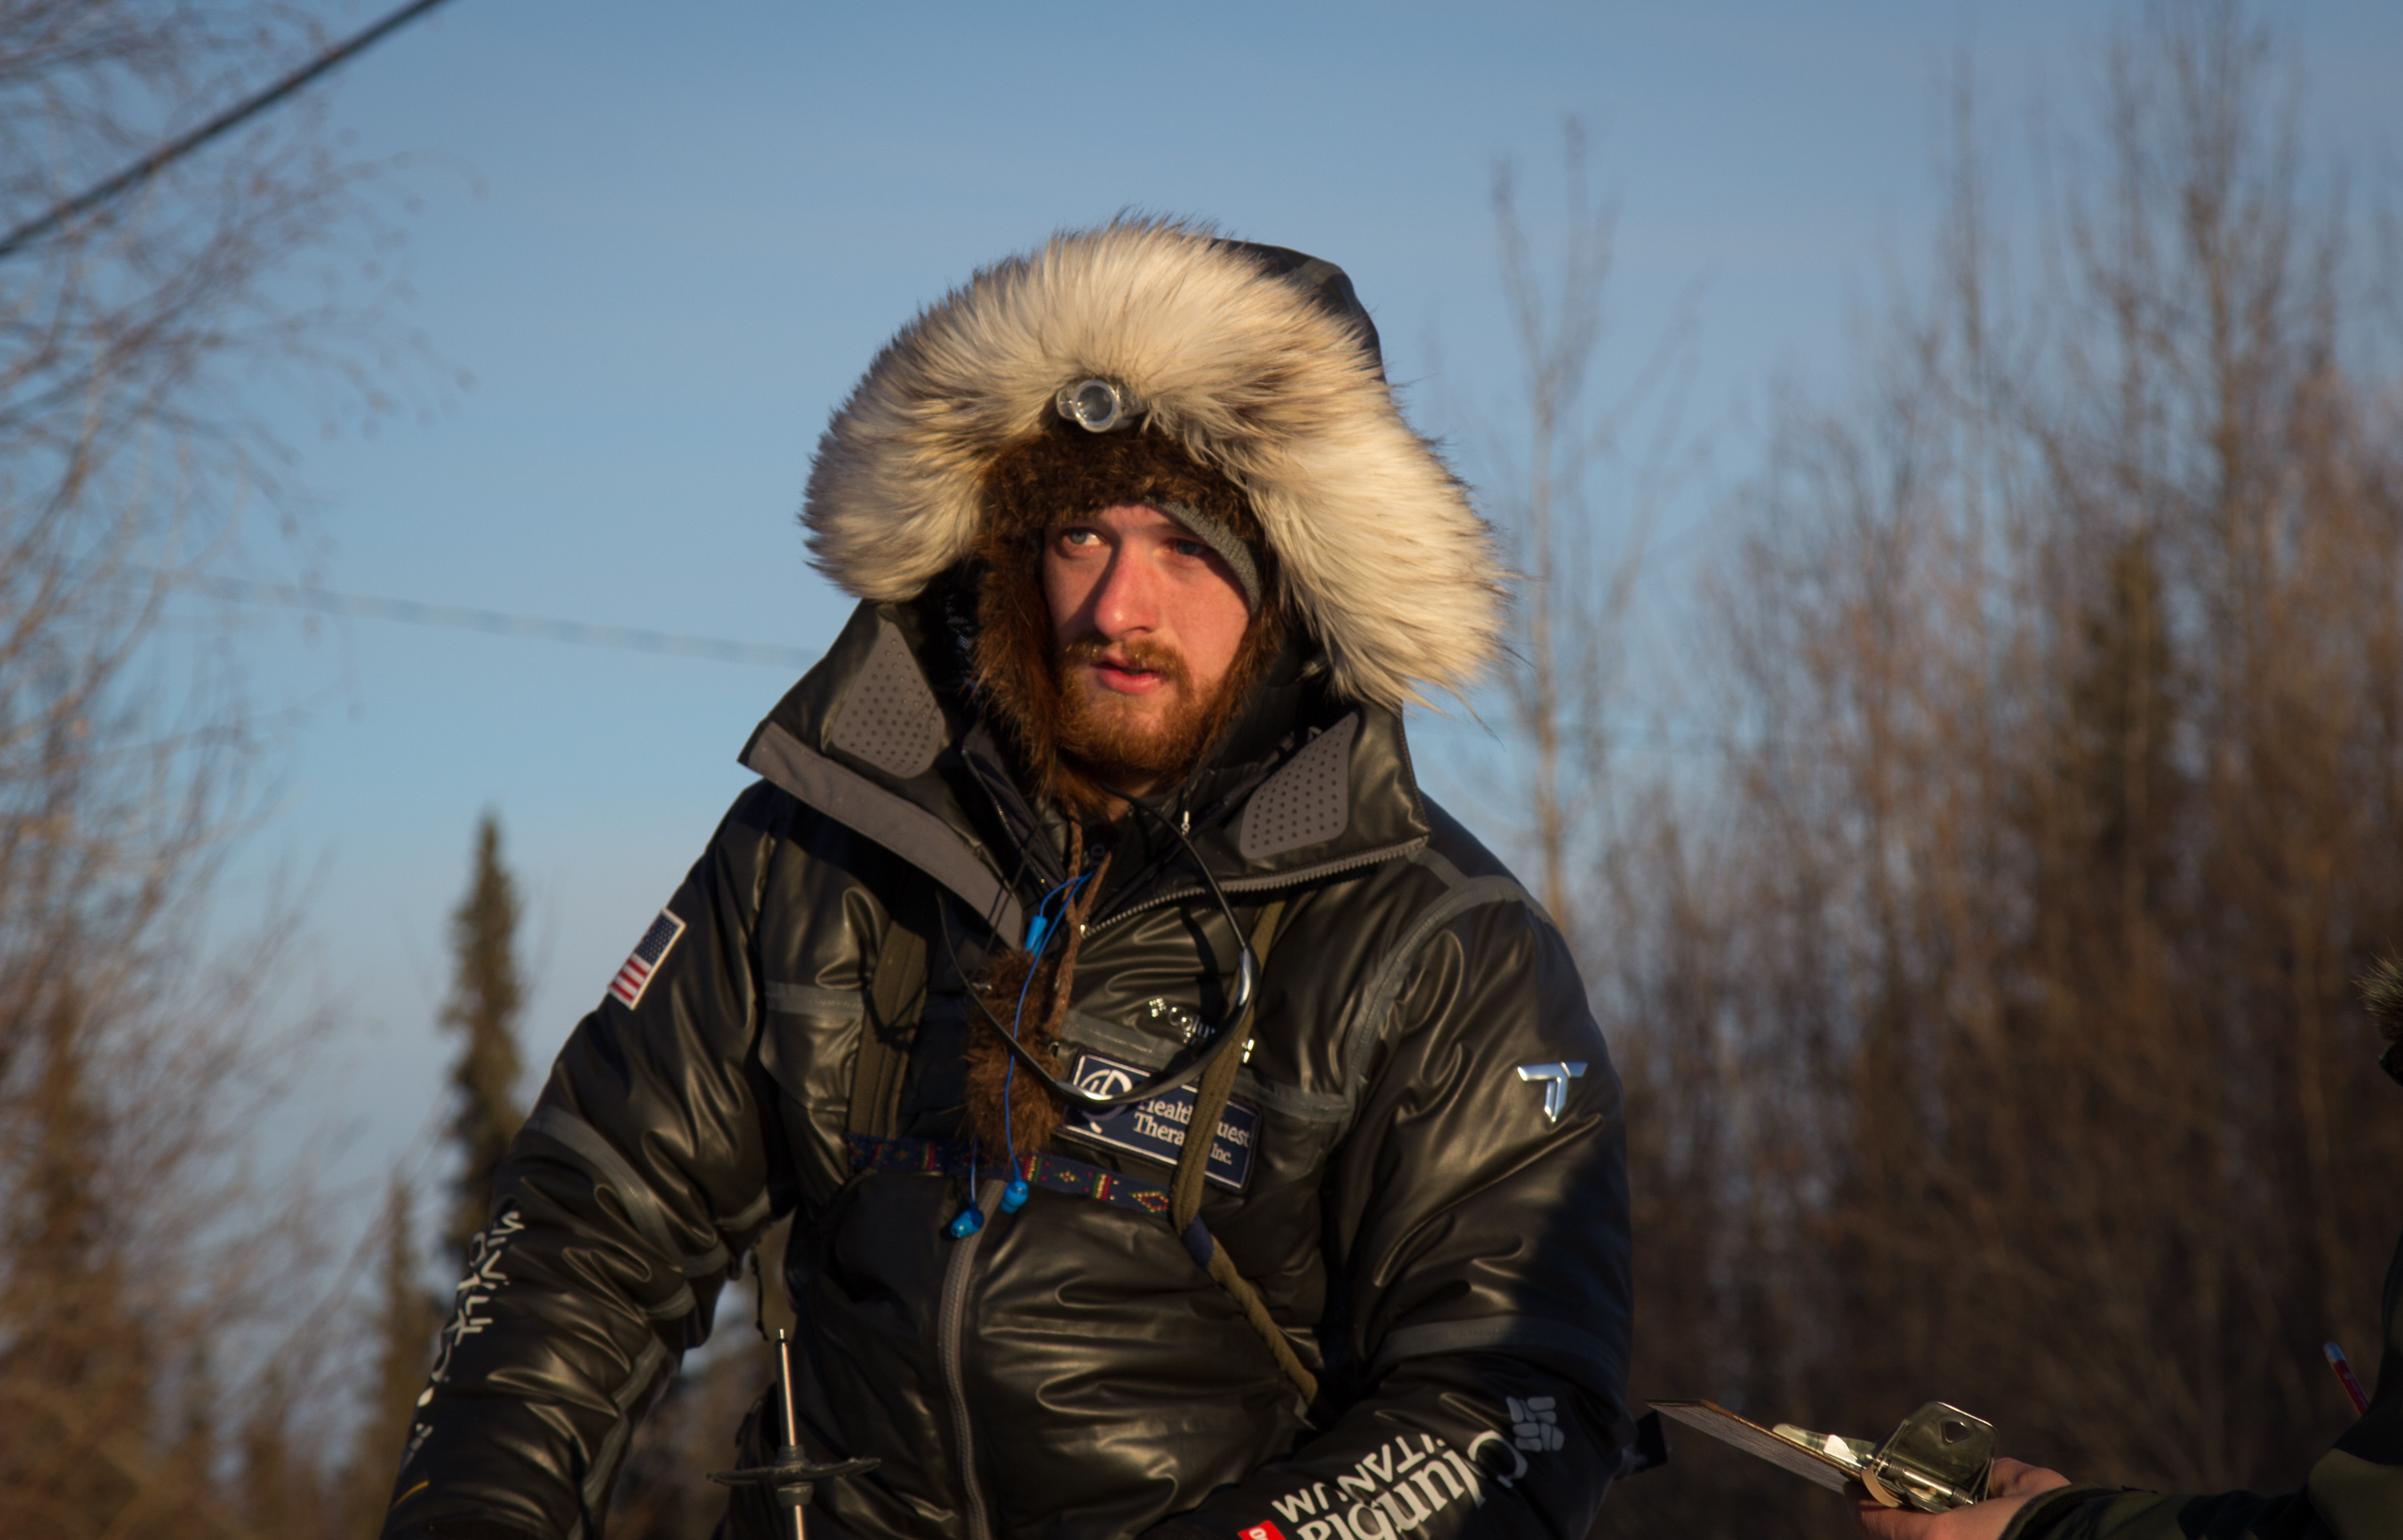 Wade Marrs pulls in to Galena in the 2016 Iditarod. (Photo by Zach Hughes/KSKA)